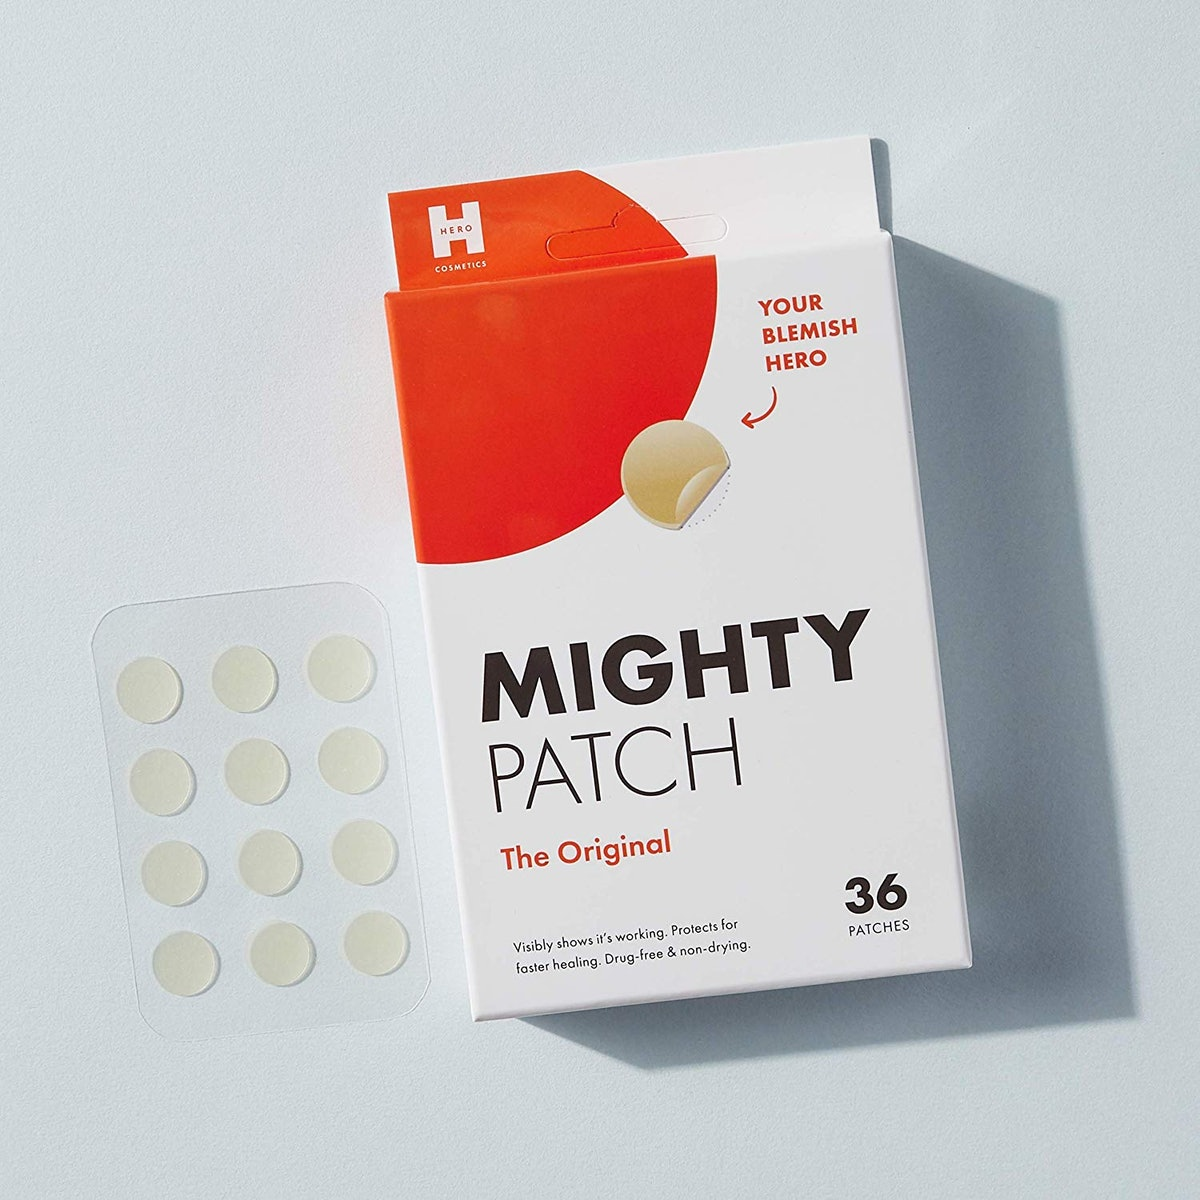 Mighty Patch Hydrocolloid Acne Patches (36 Count)